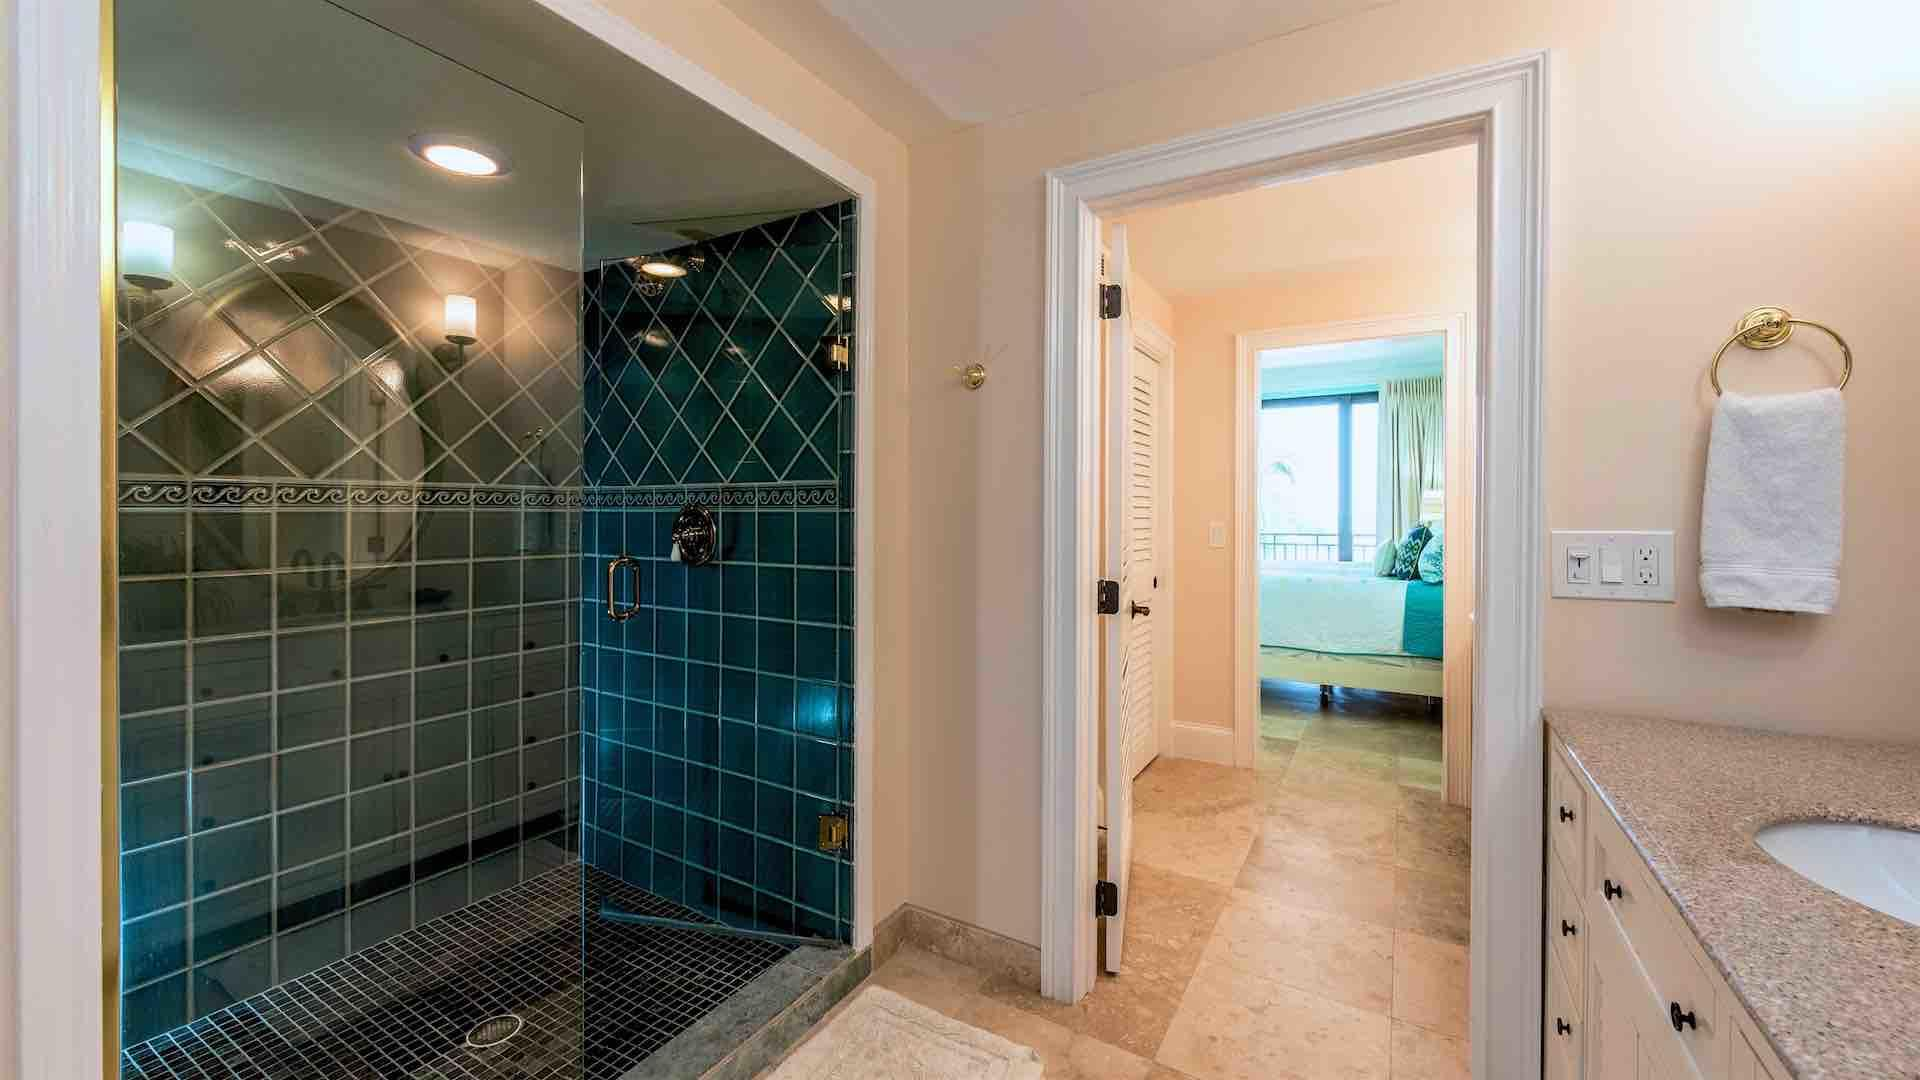 The master bathroom has a large glass shower...